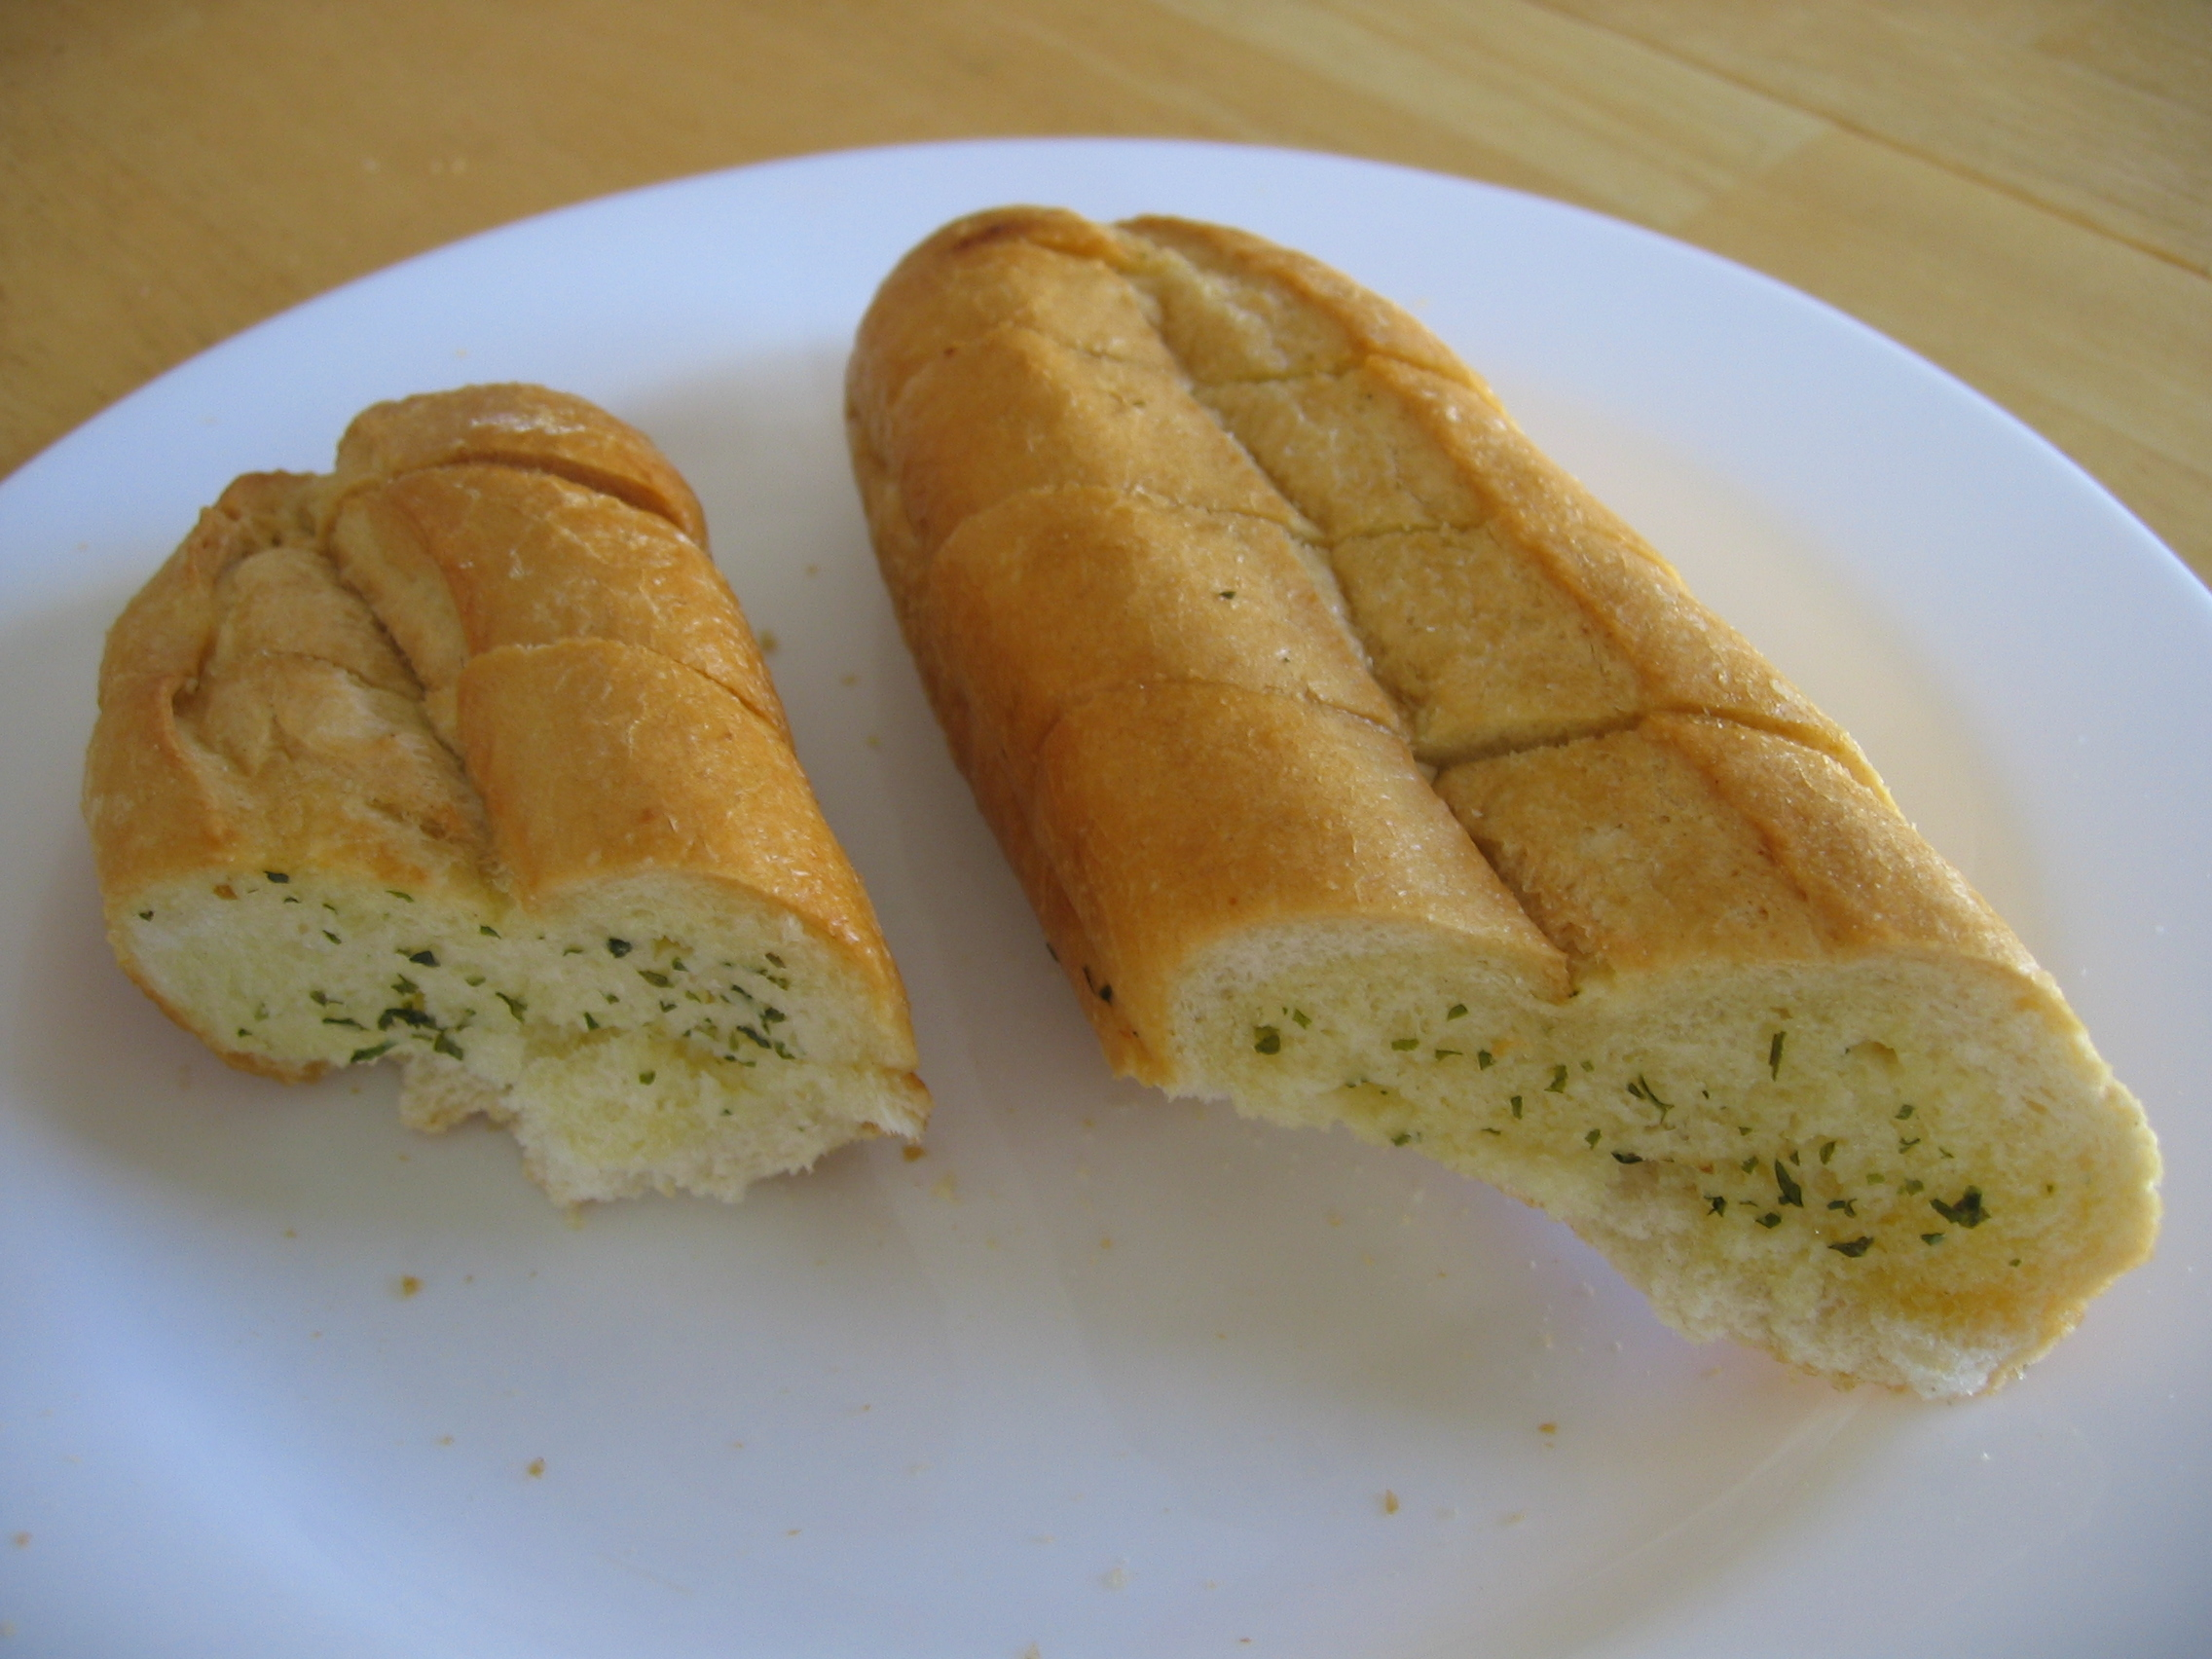 File:OMGsplosion likes Garlic Bread.jpg - Wikipedia, the free ...